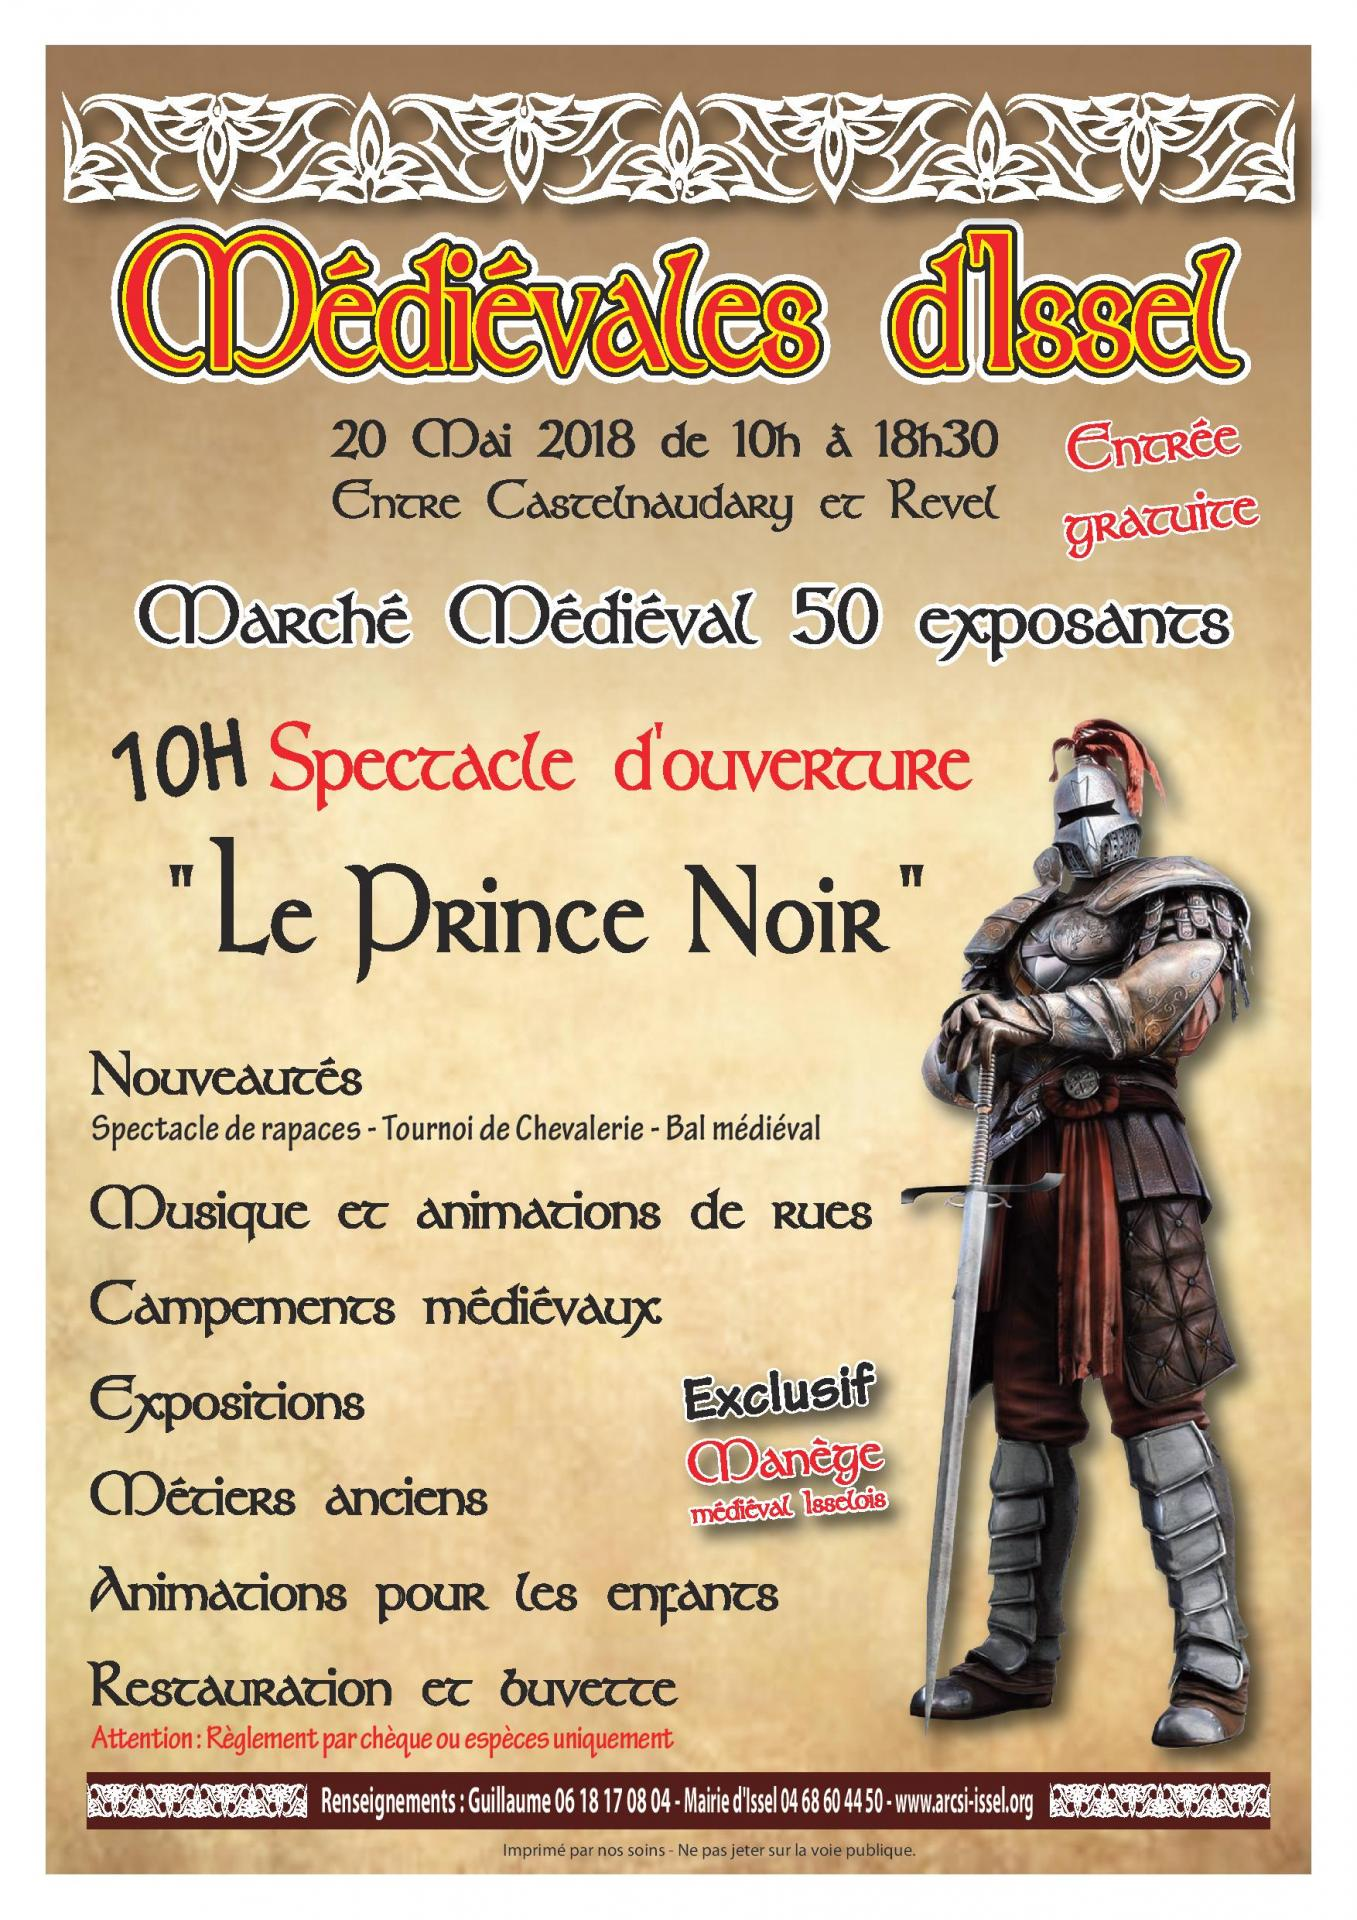 Medievales issel affiche 2018 page 001